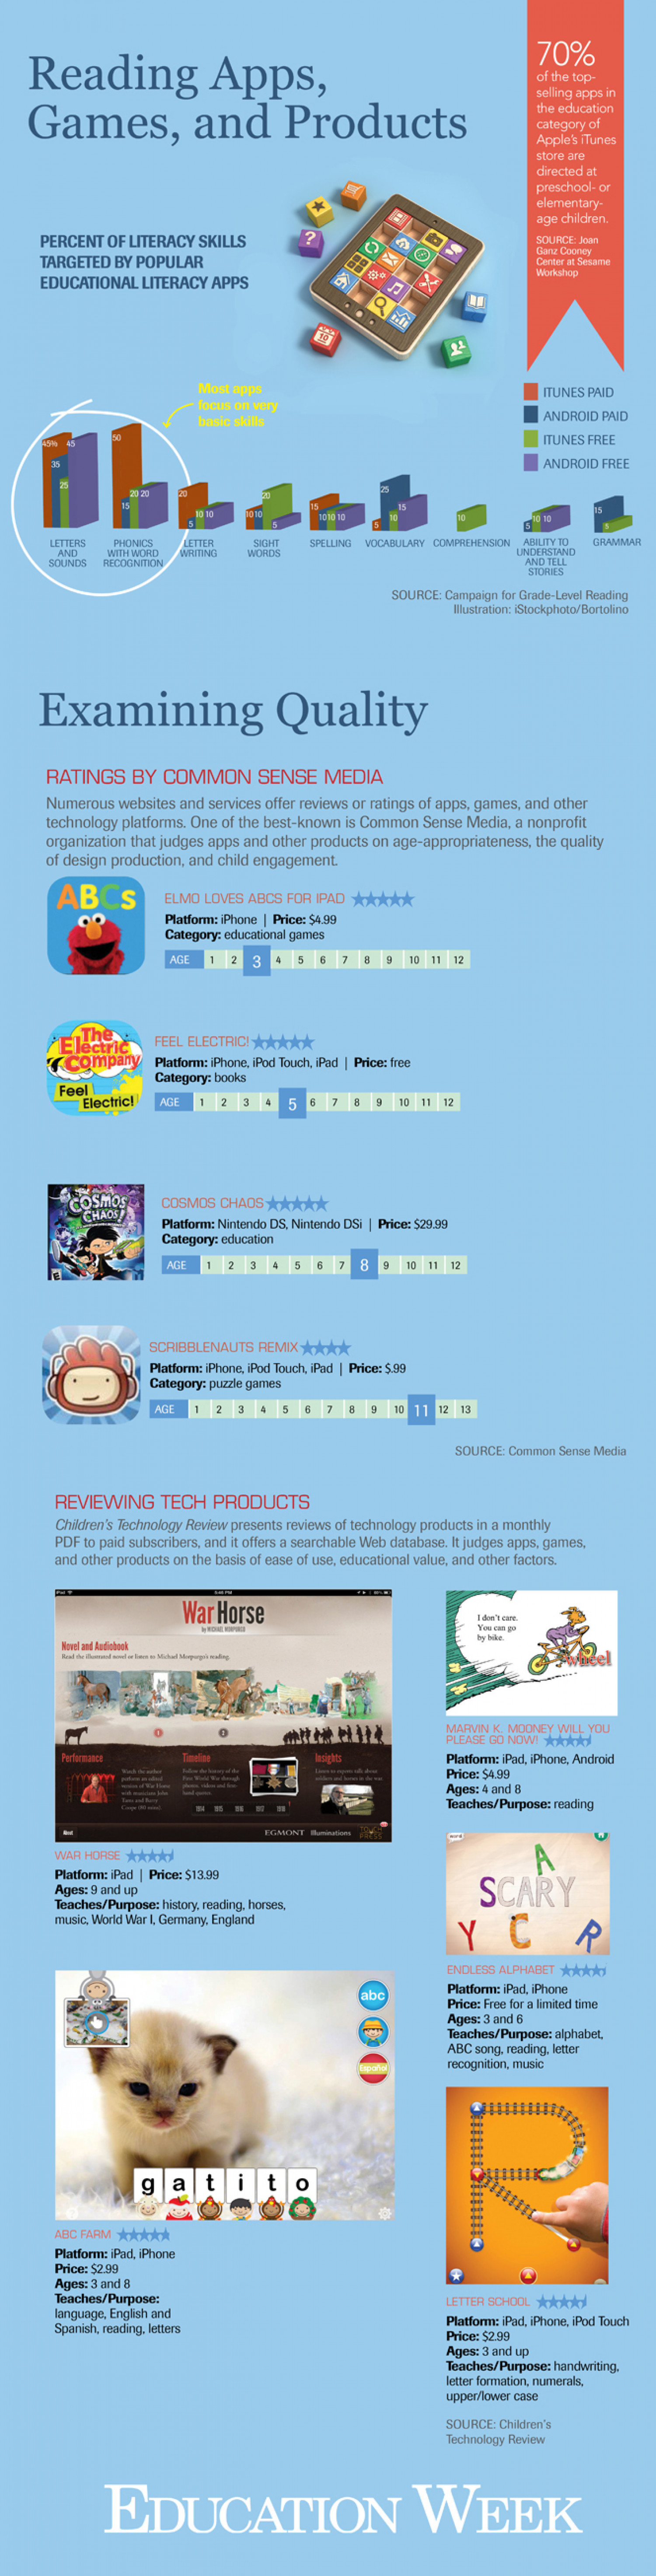 A Primer on Mobile Apps for Young Students Learning to Read Infographic